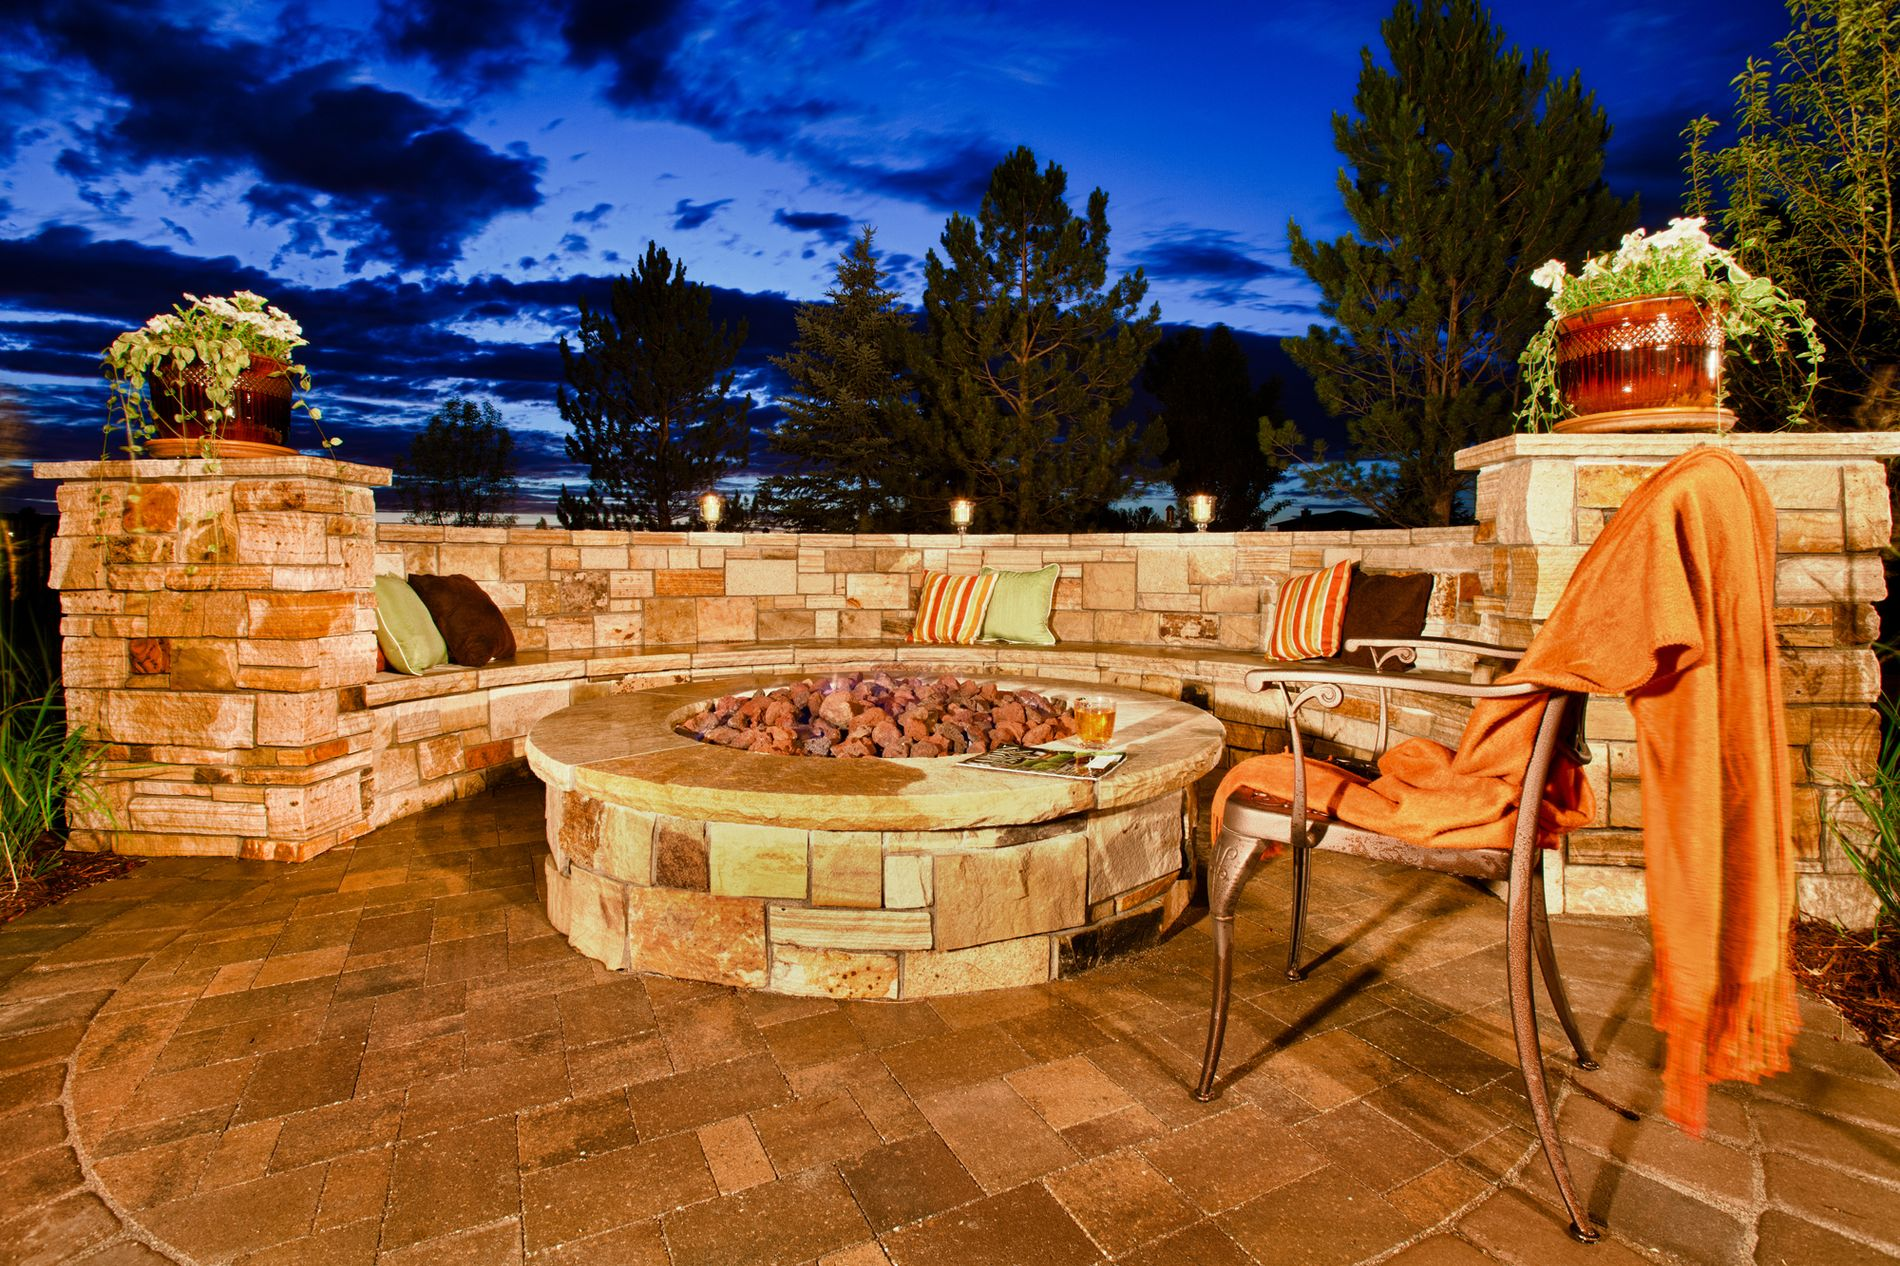 Fire Pit at Night with Masonry Seating